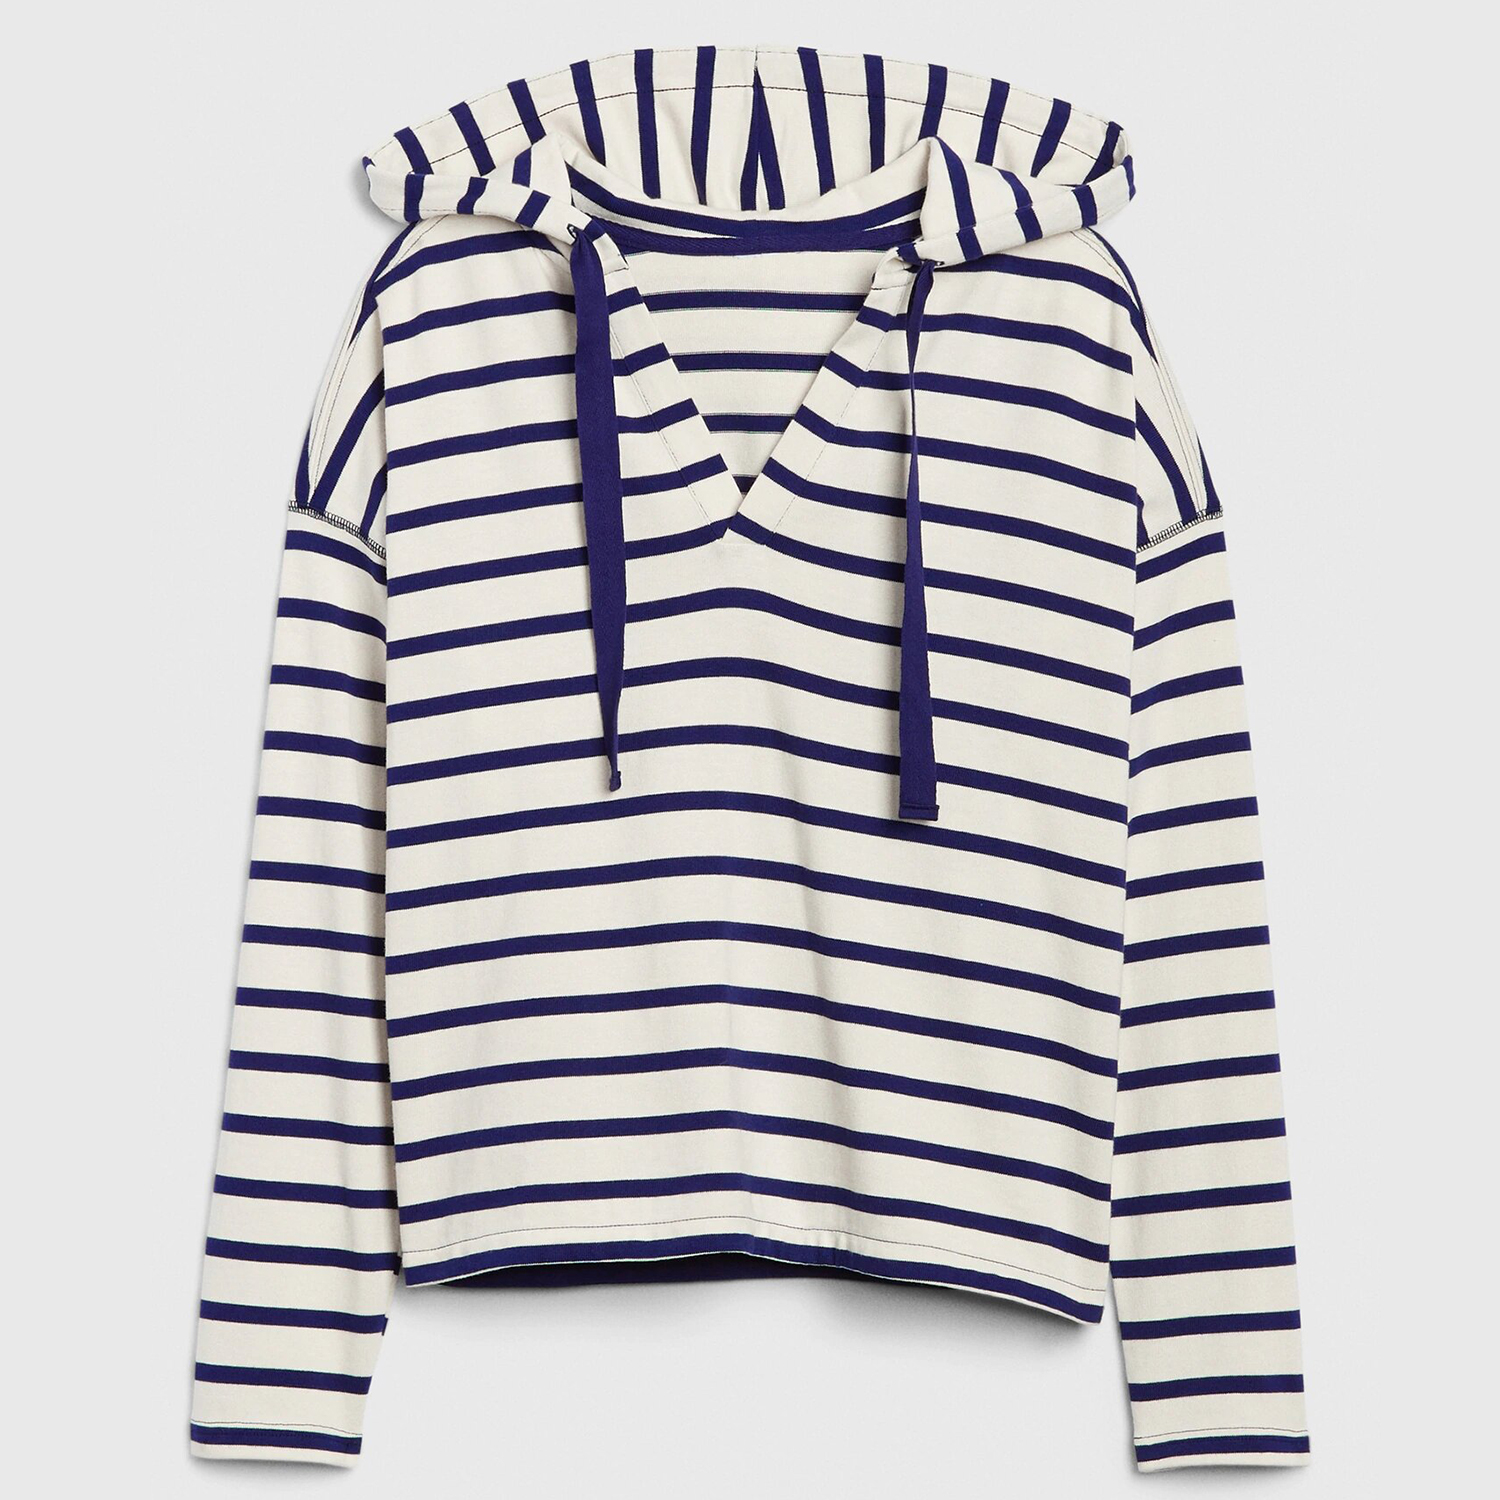 GAP Sale clothing